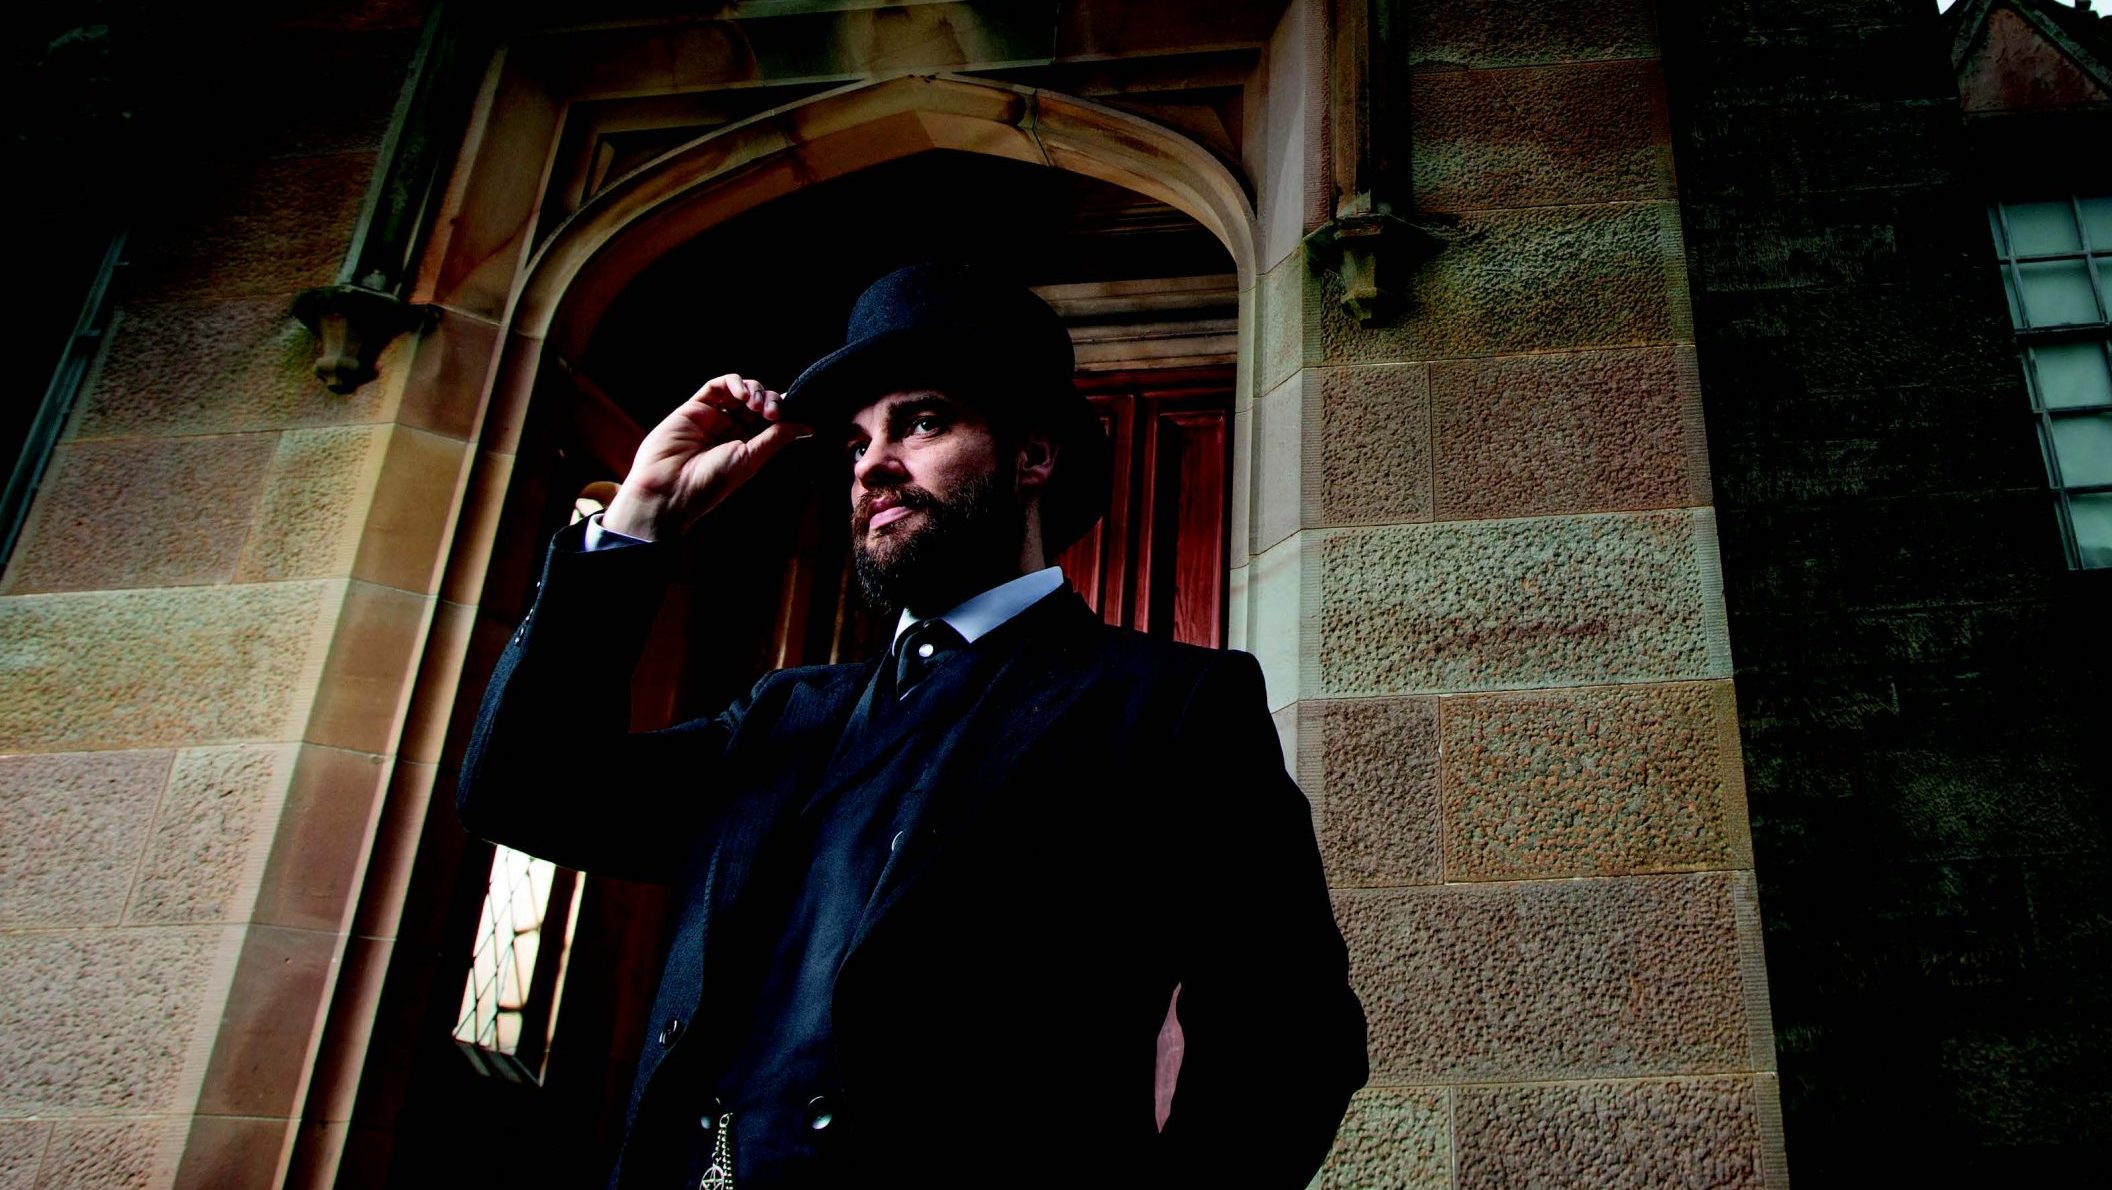 Ash Pryce volunteers at Lauriston Castle as part of Edinburgh Museums